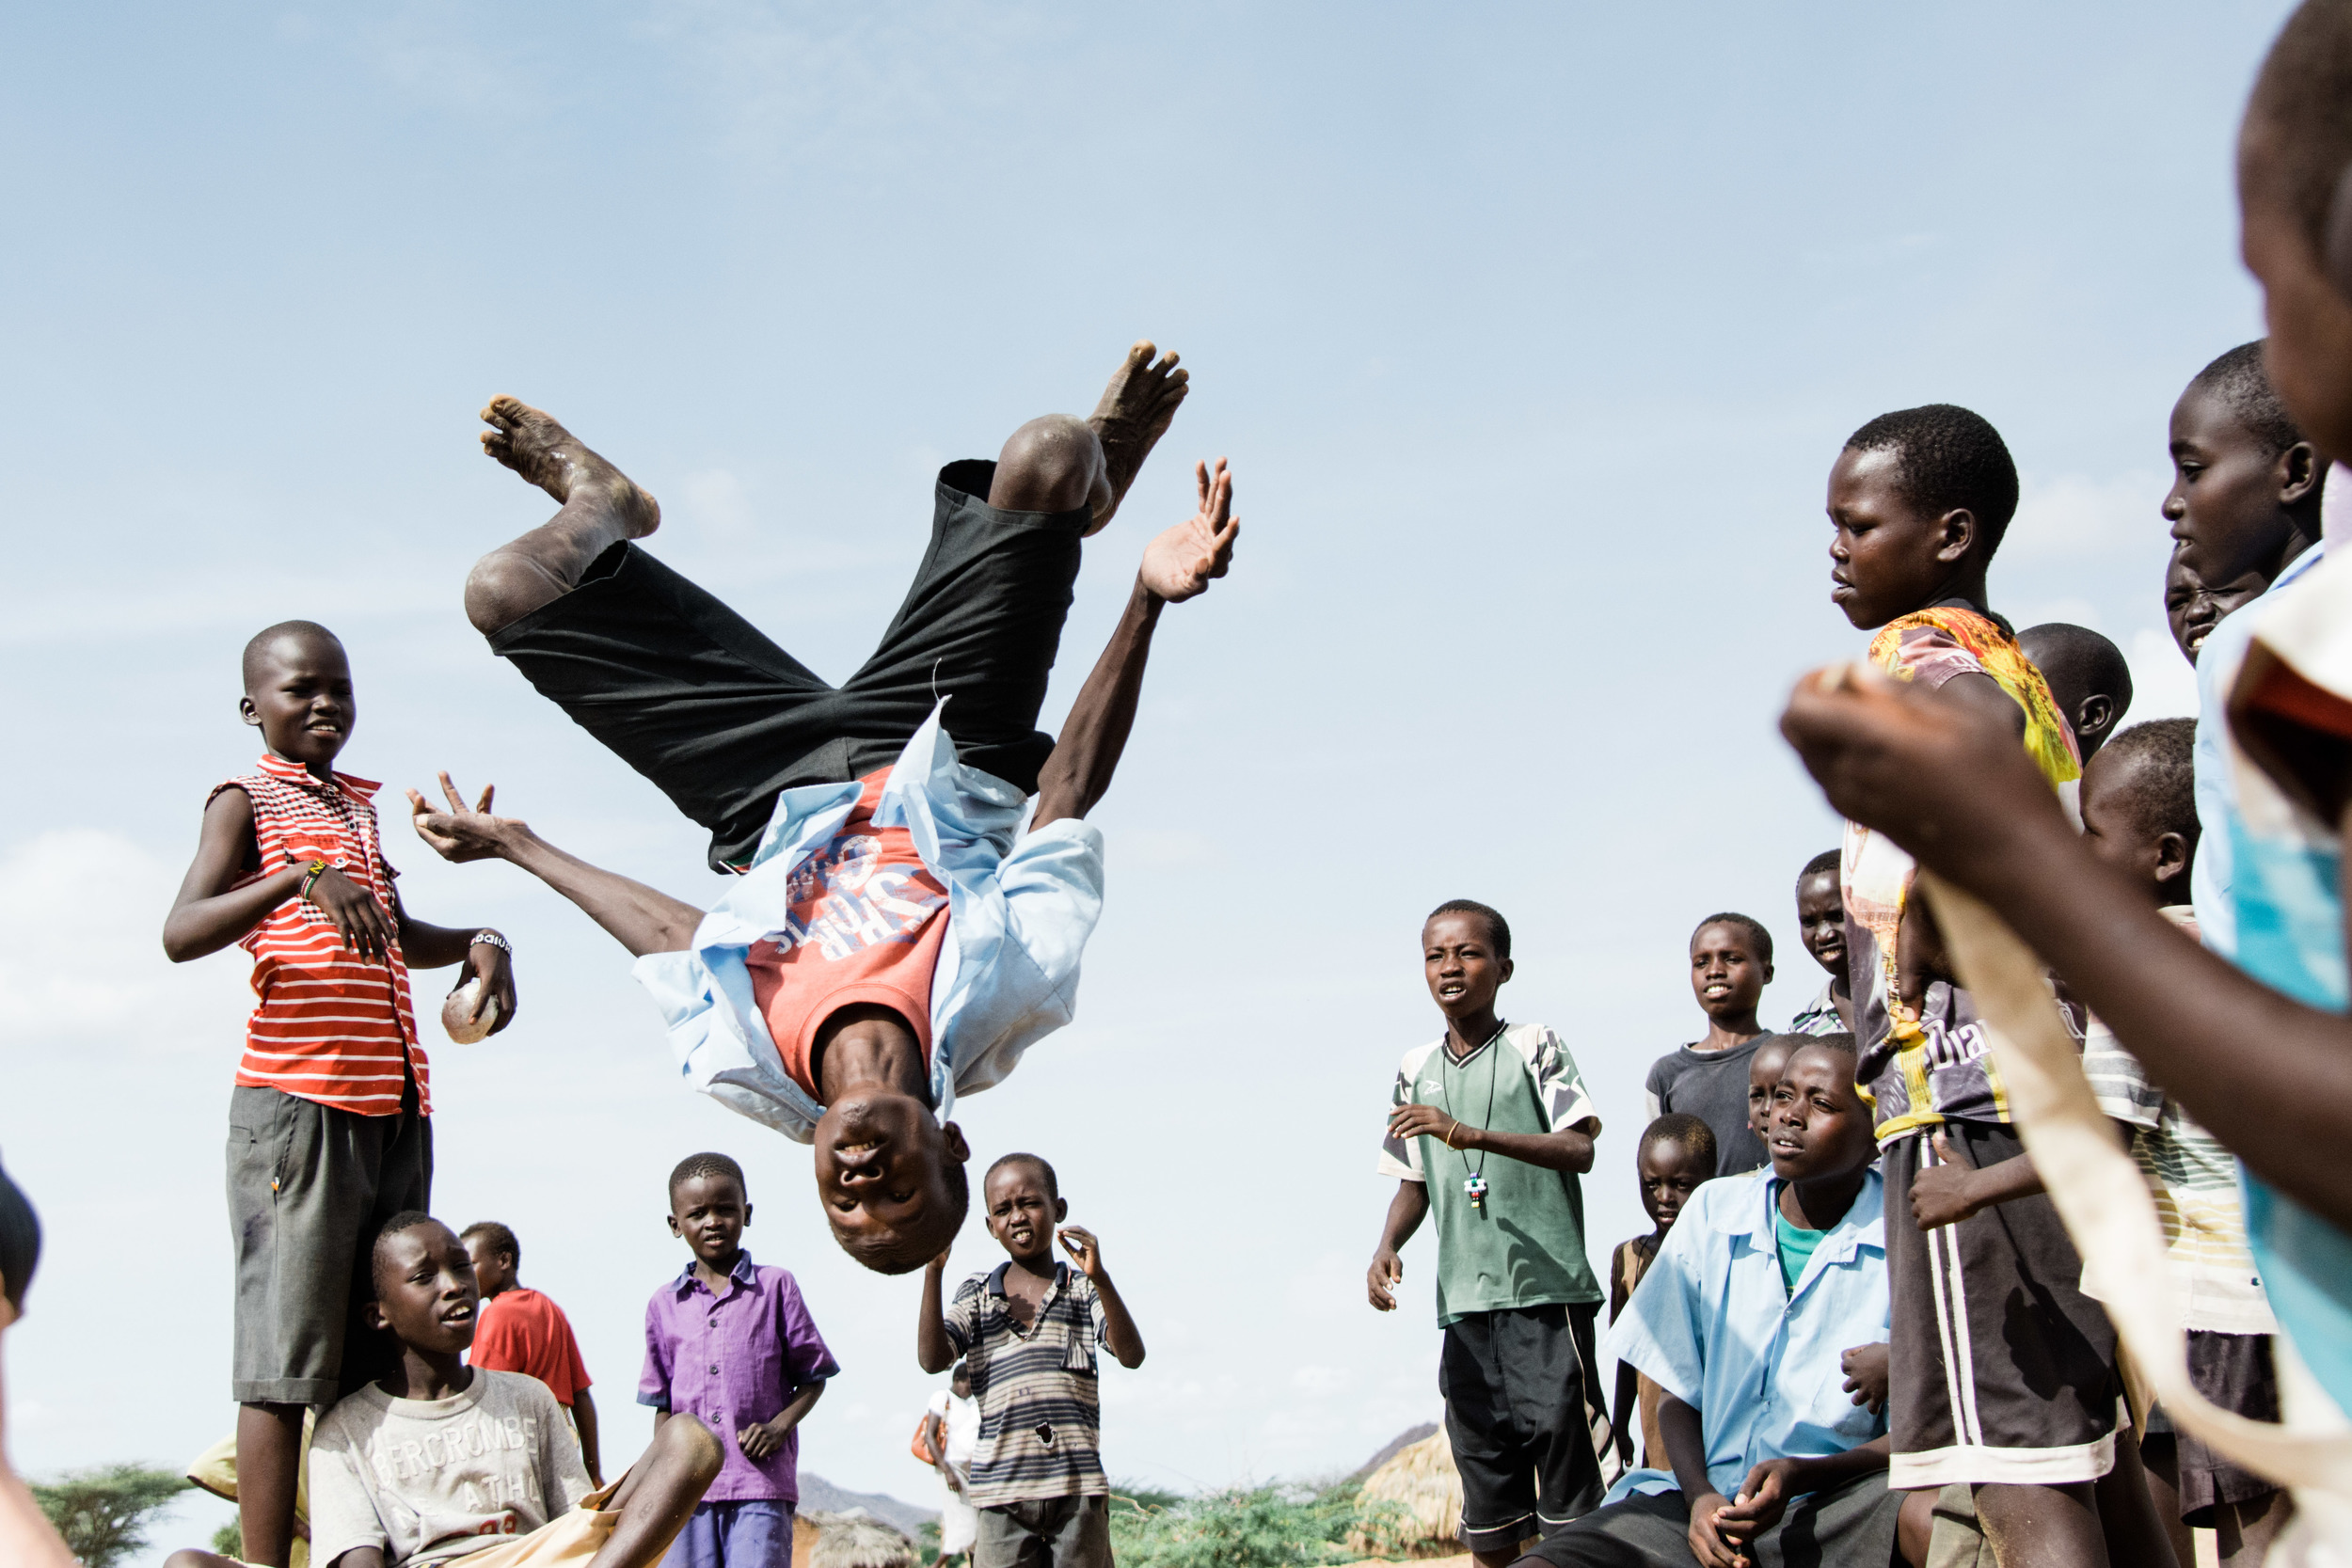 Children gathering to watch backflips in the courtyard